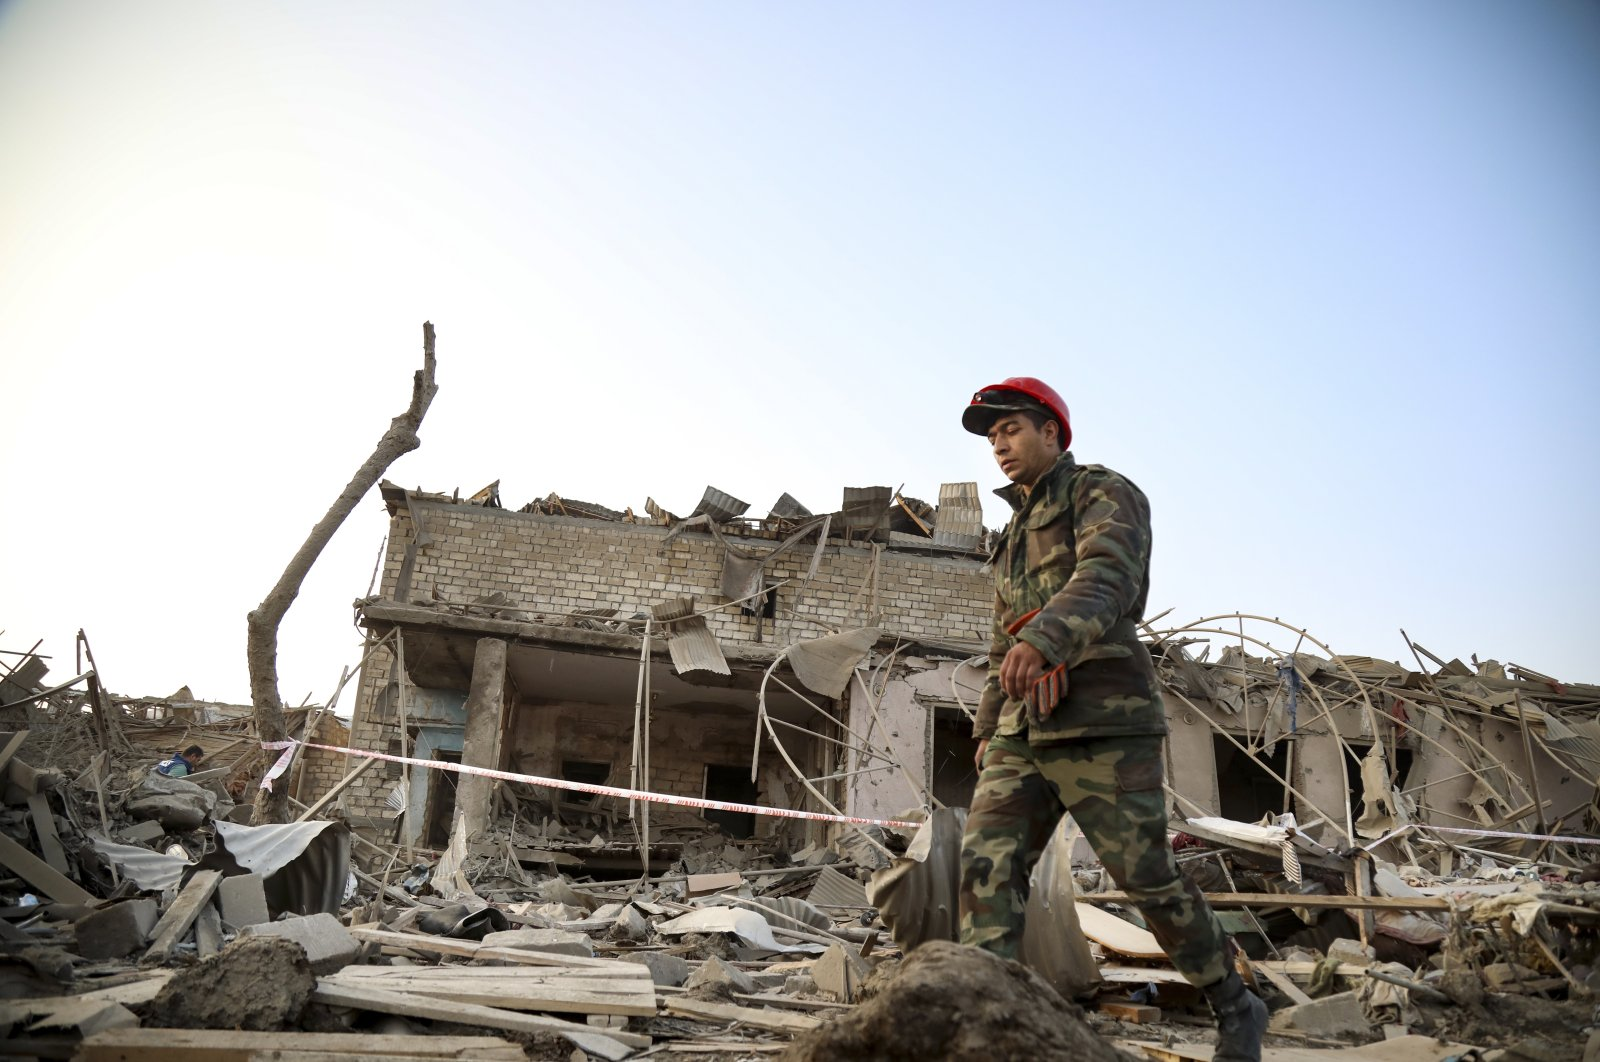 A soldier walks past a destroyed house in a residential area of Azerbaijan's second-largest city that was hit by rocket fire overnight by Armenian forces, Ganja, Azerbaijan, Oct. 17, 2020. (AP Photo)